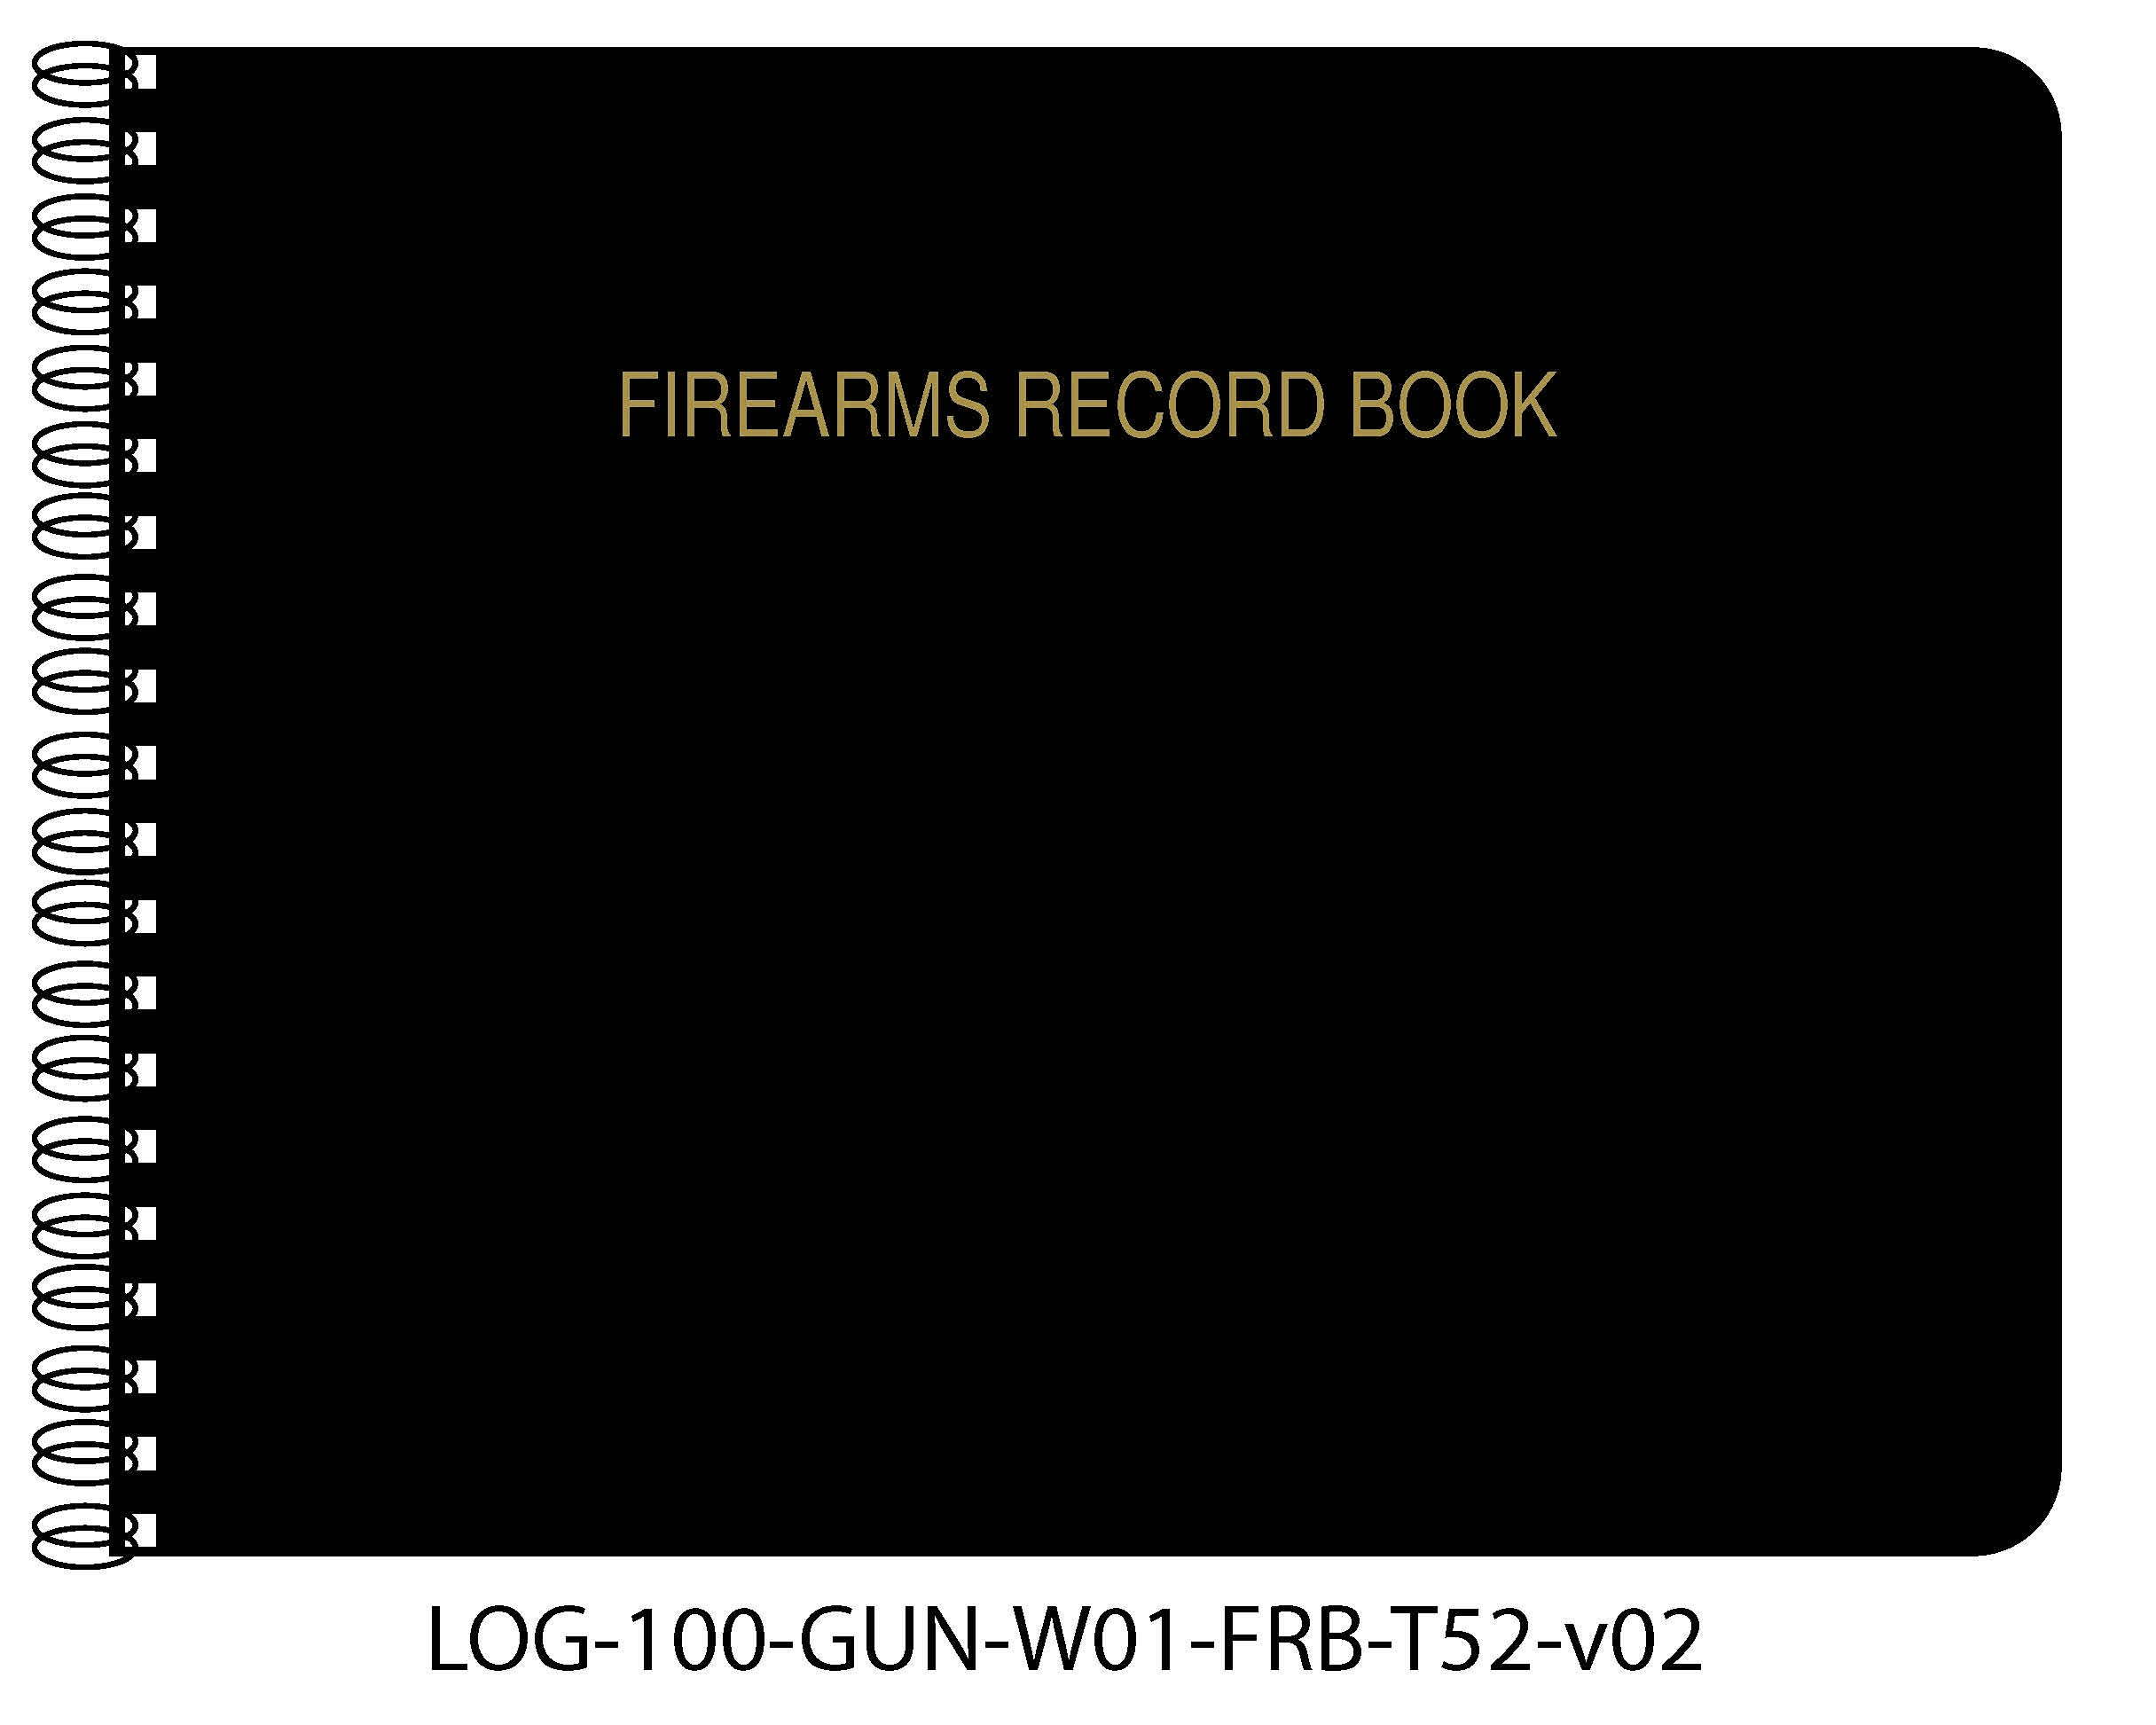 BookFactory Firearms Record Book / Gun Log Book - 100 Pages, Black TransLux Cover - Wire-O, 11'' x 8 1/2'' (LOG-100-GUN-W01-FRB-T52)